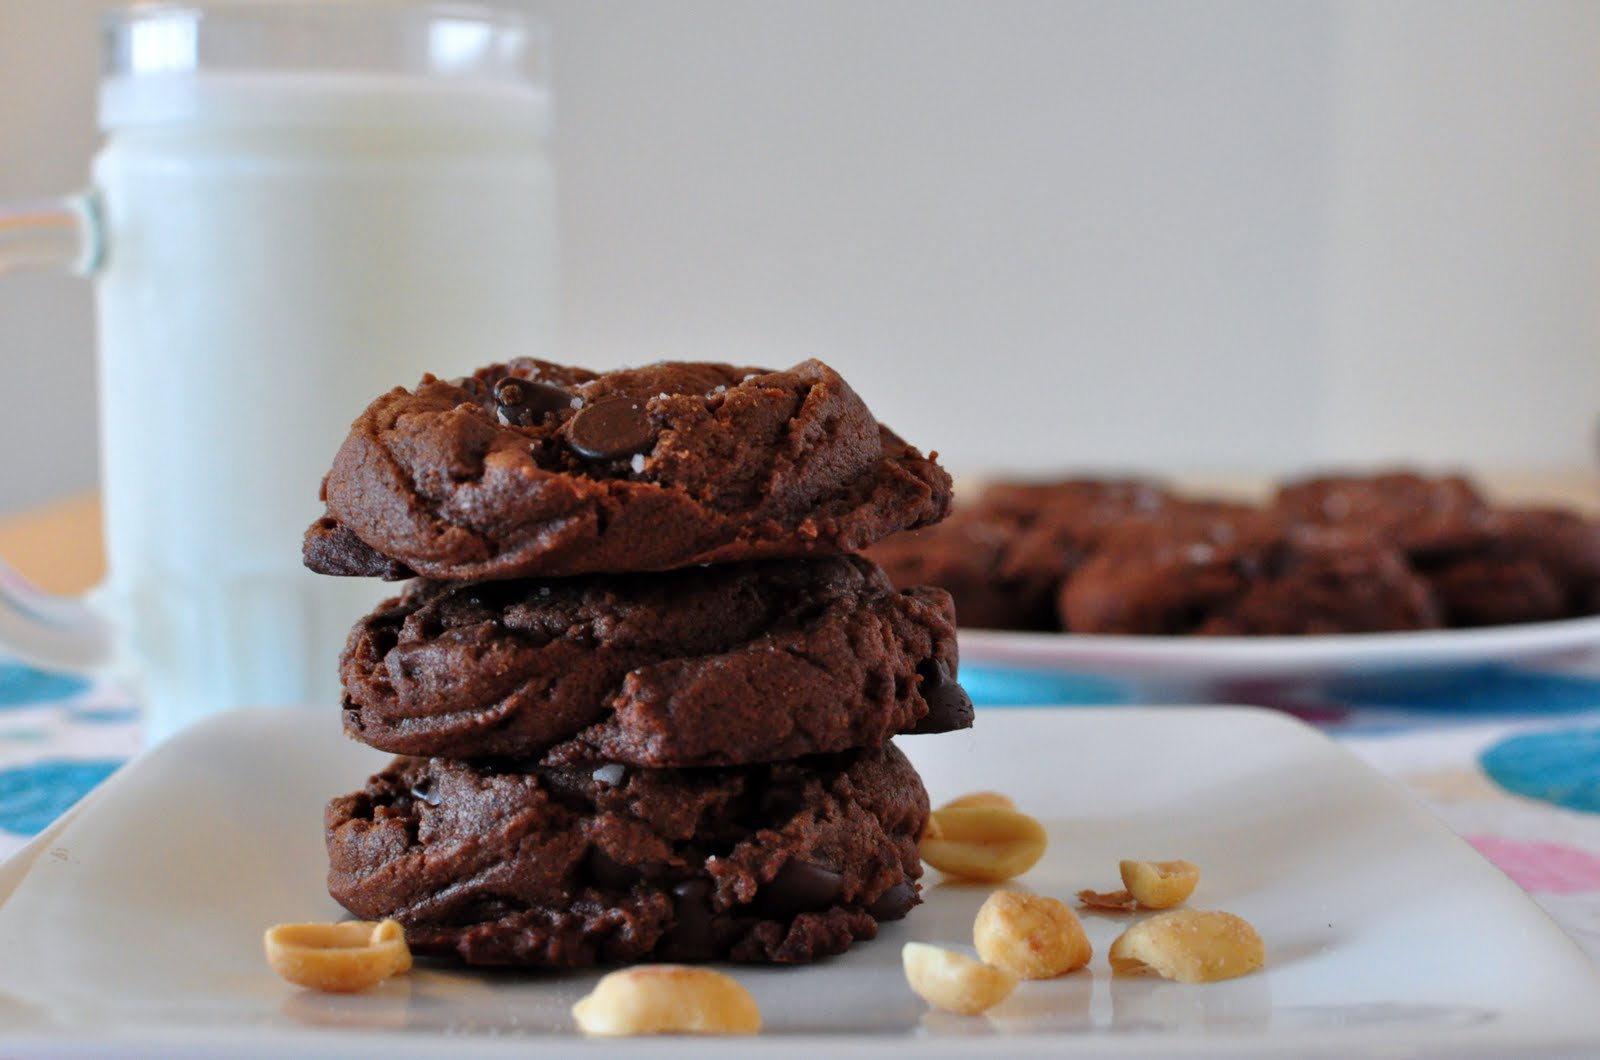 My Tiny Oven: Salted Double Chocolate Peanut Butter Cookies